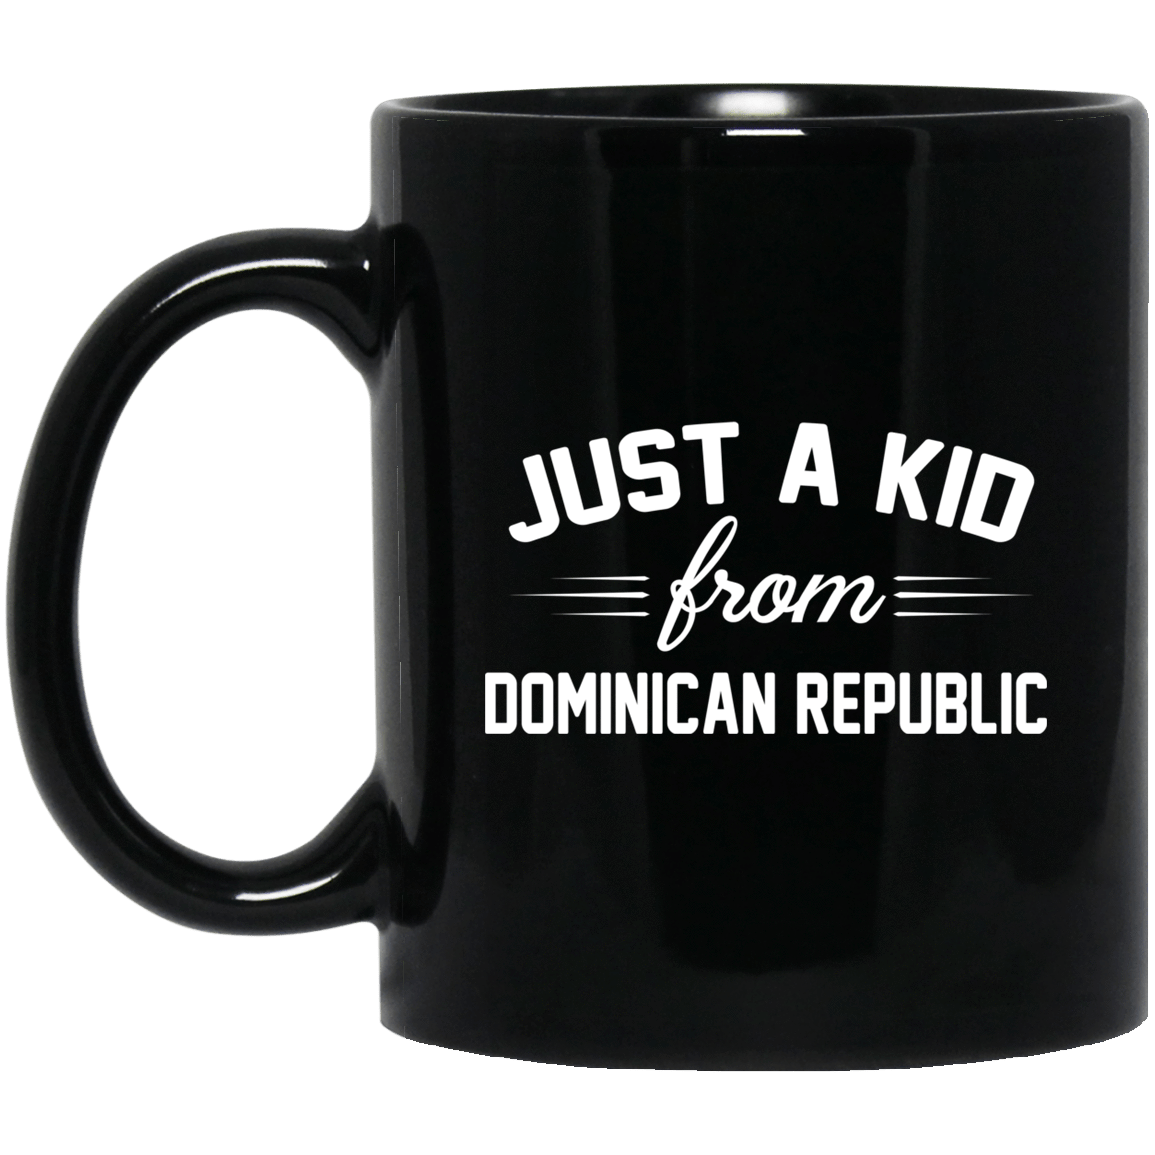 Just A Kid Store | Dominican Republic Mug 1065-10181-72111275-49307 - Tee Ript